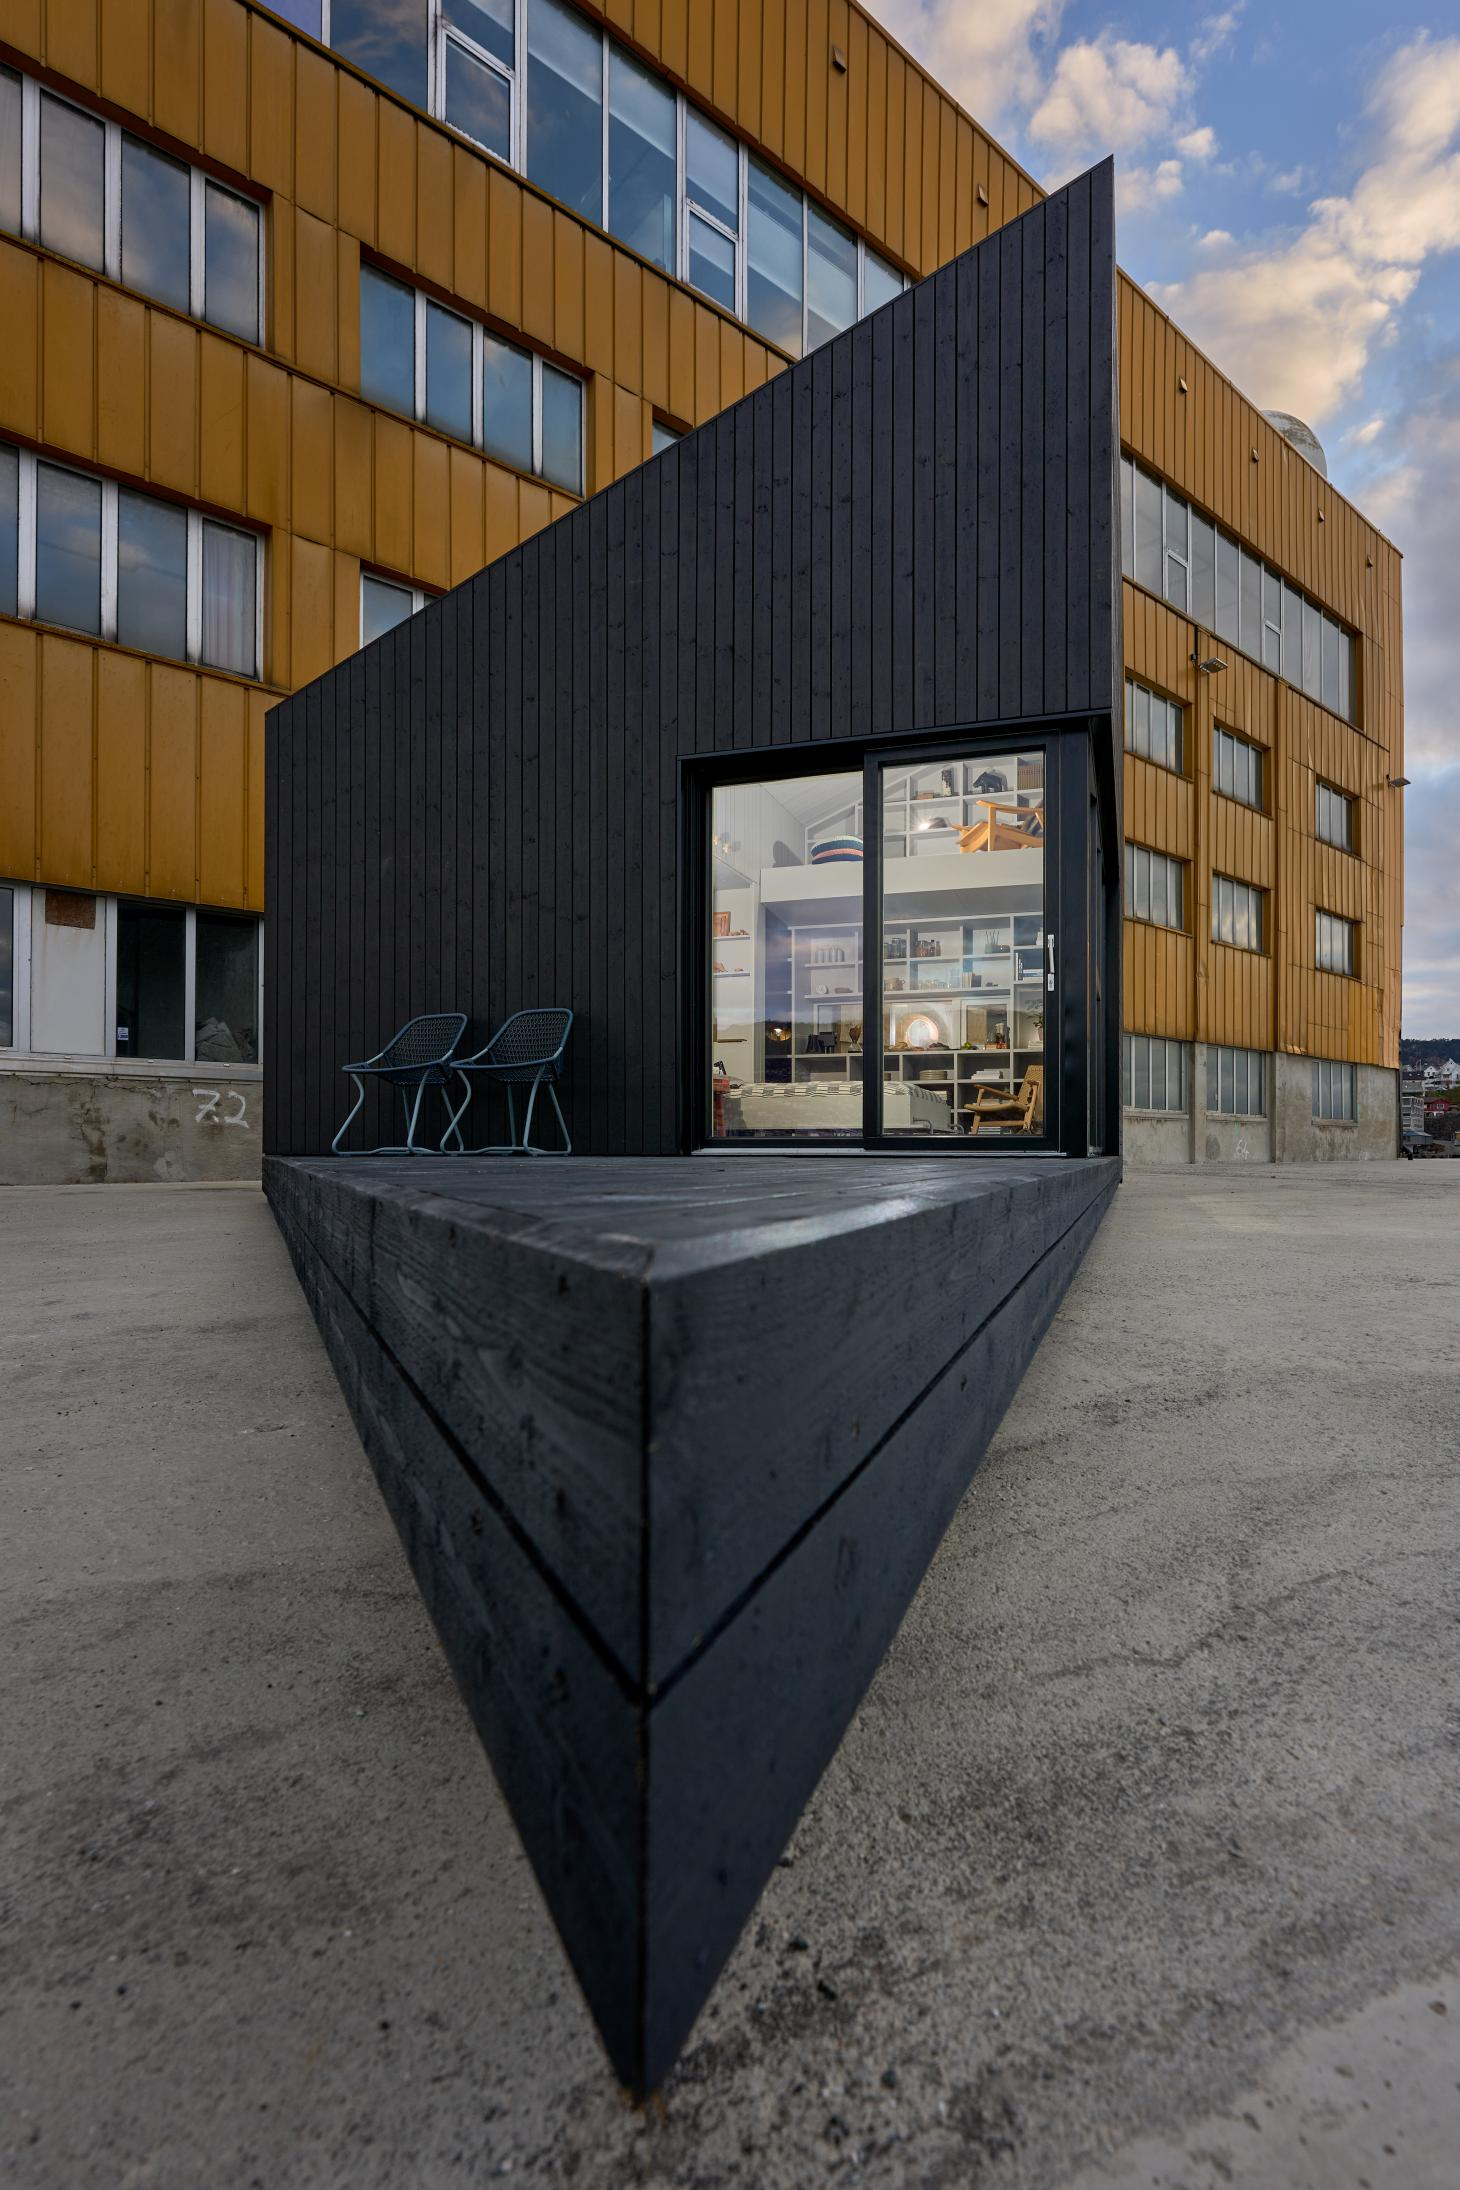 The XS Minihus by Saunders Architecture, a 24m2 micro cabin designed for any site